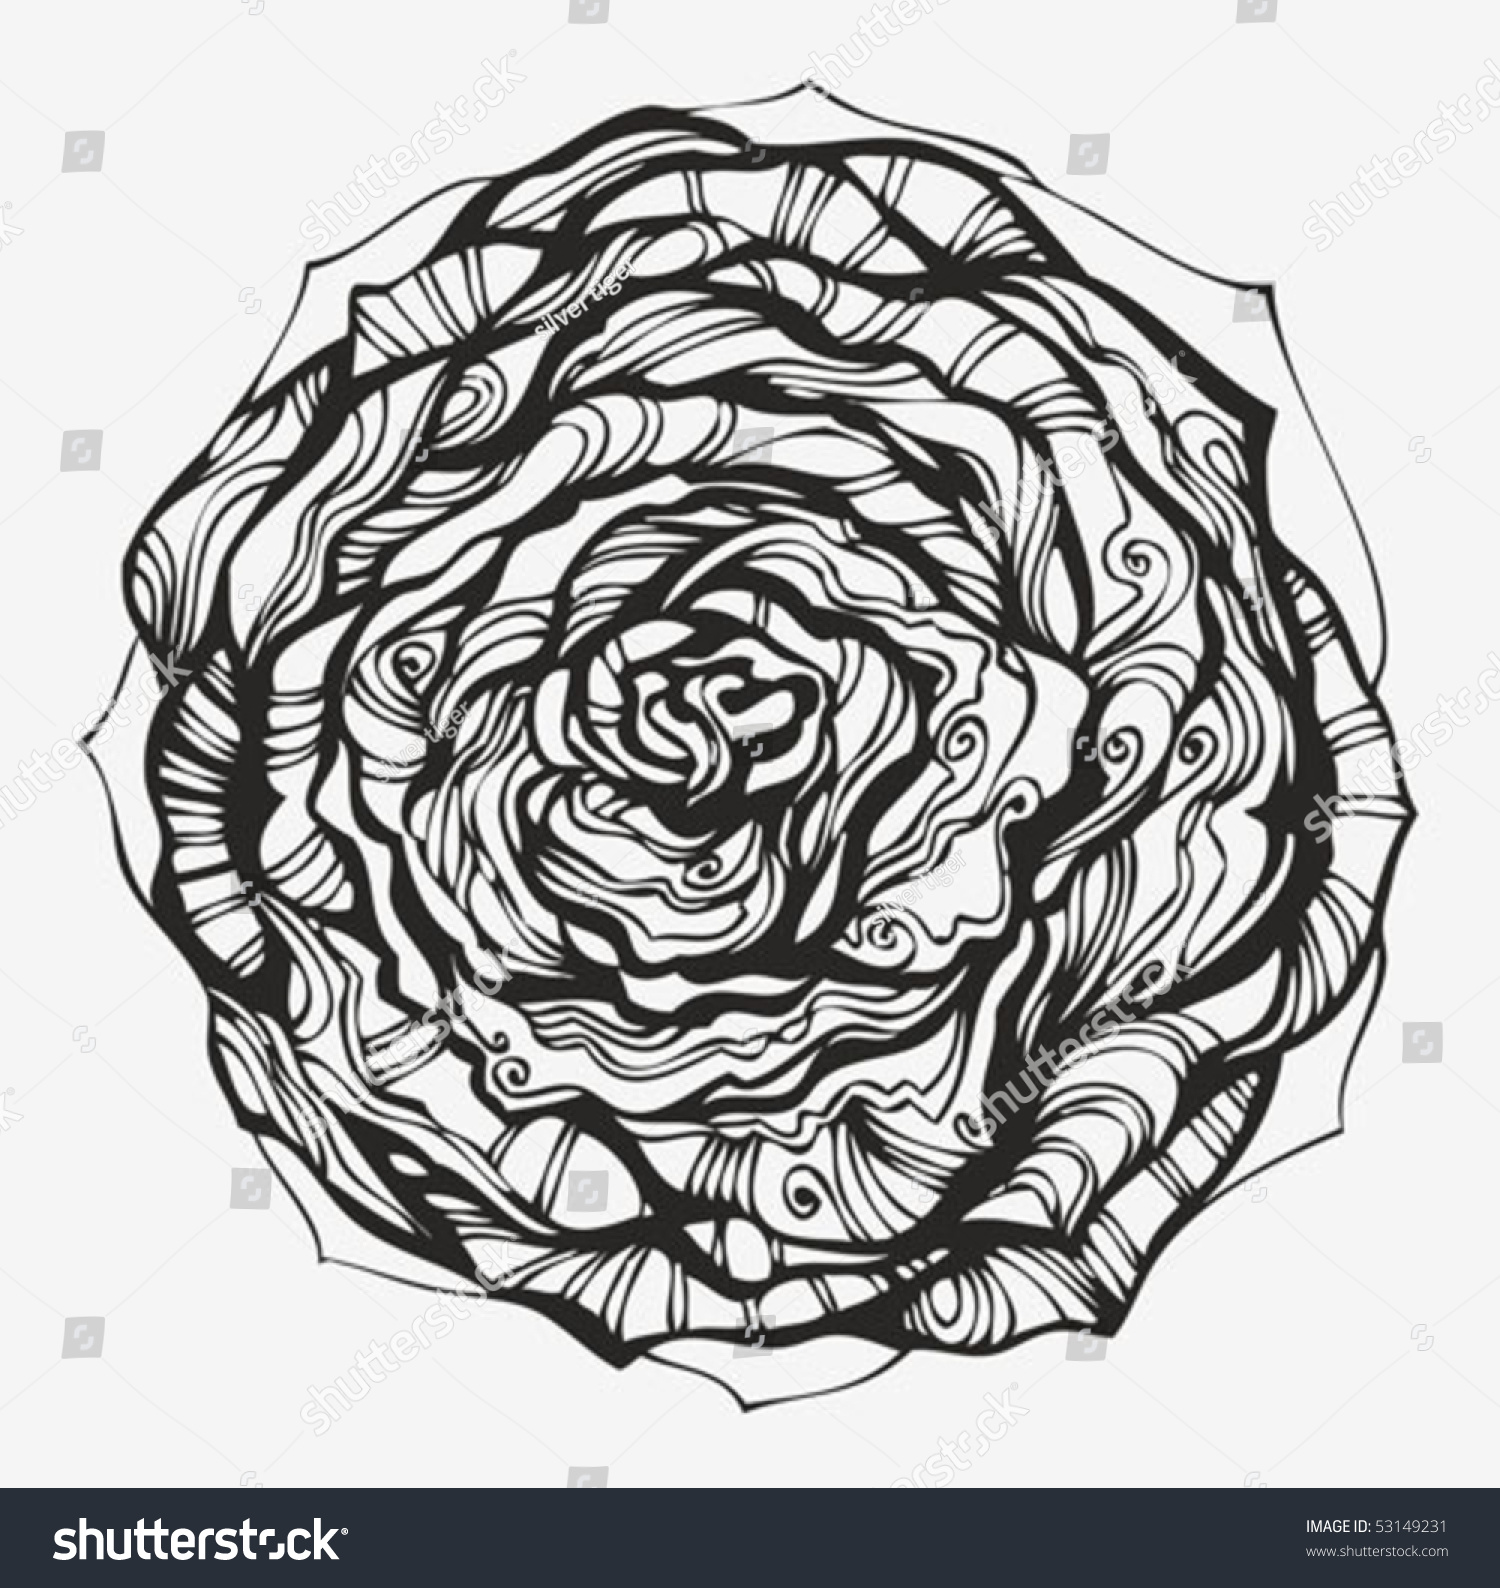 Abstract Ornamental Rose Hand Drawn High Stock Vector